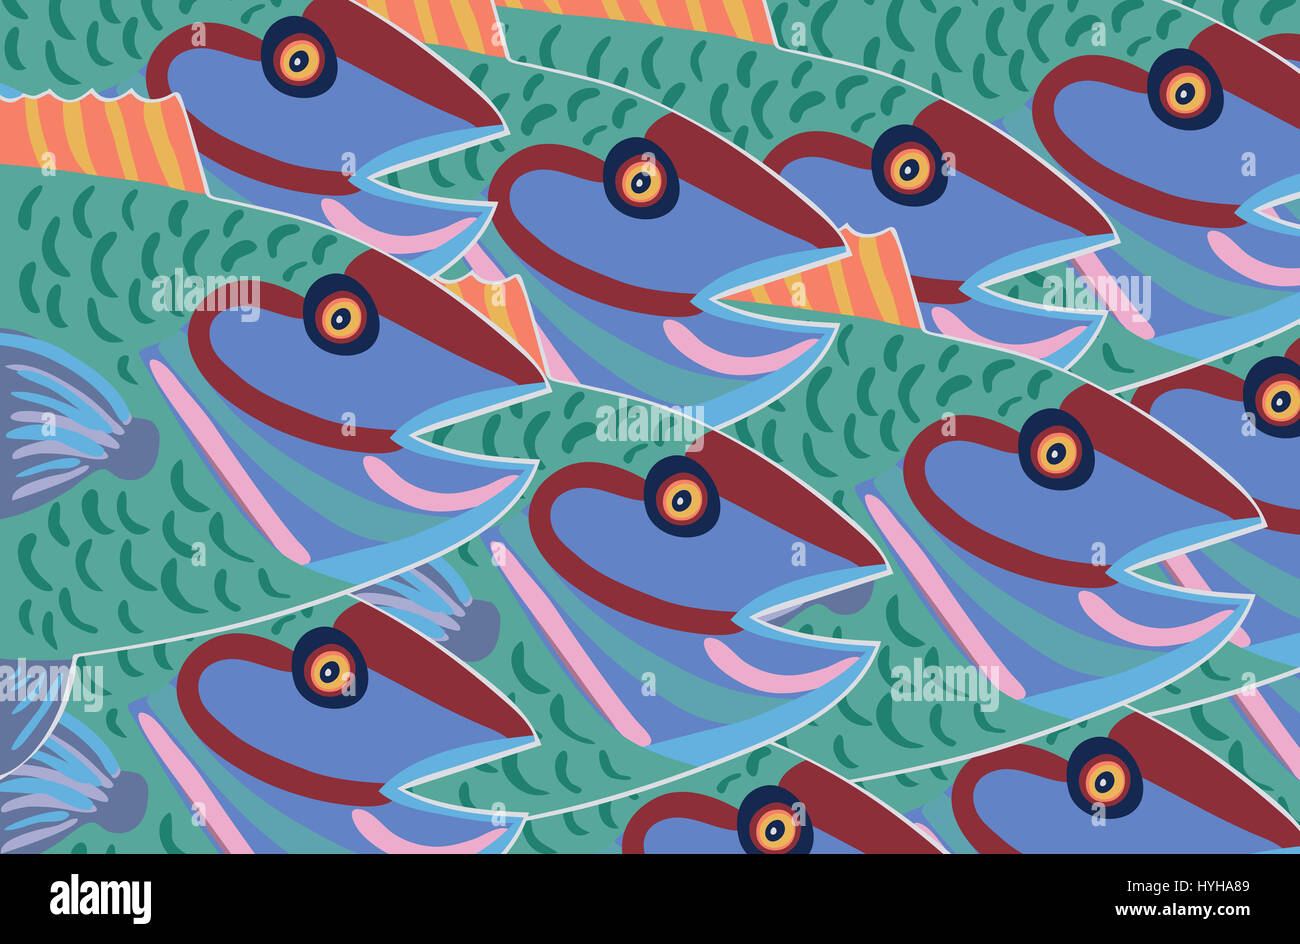 Blue fish. An illustration about swimming in the same direction. - Stock Image